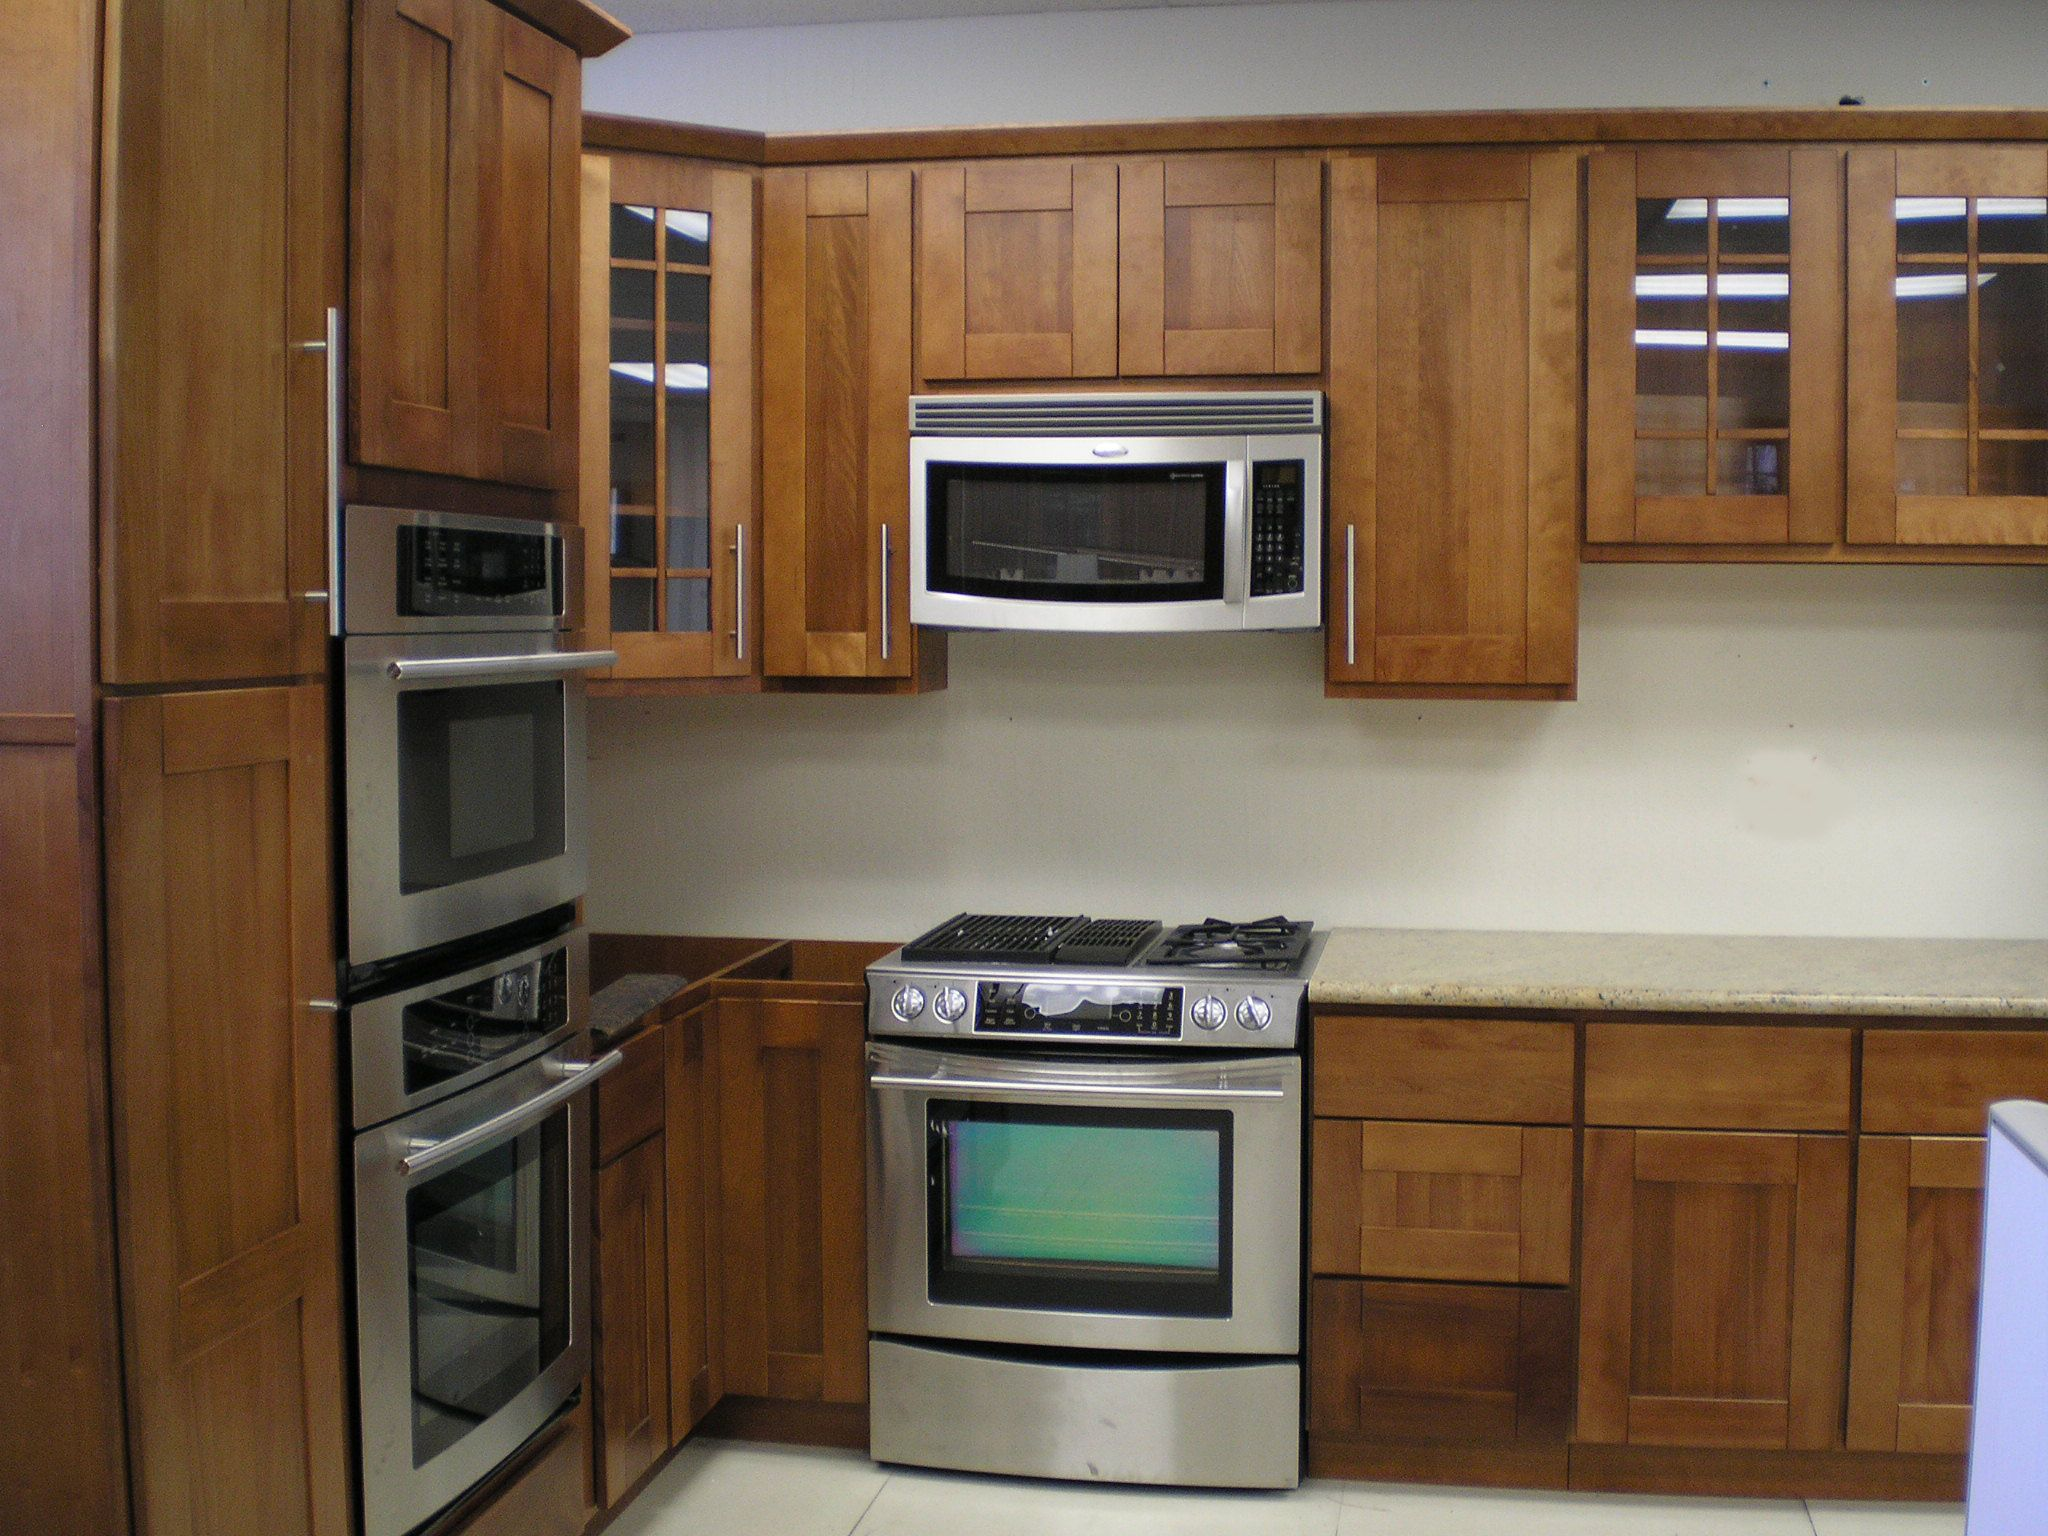 Kitchen Cabinets Closeout Kitchen Cabinets On Raised Panel Shaker Style Toffee Finish